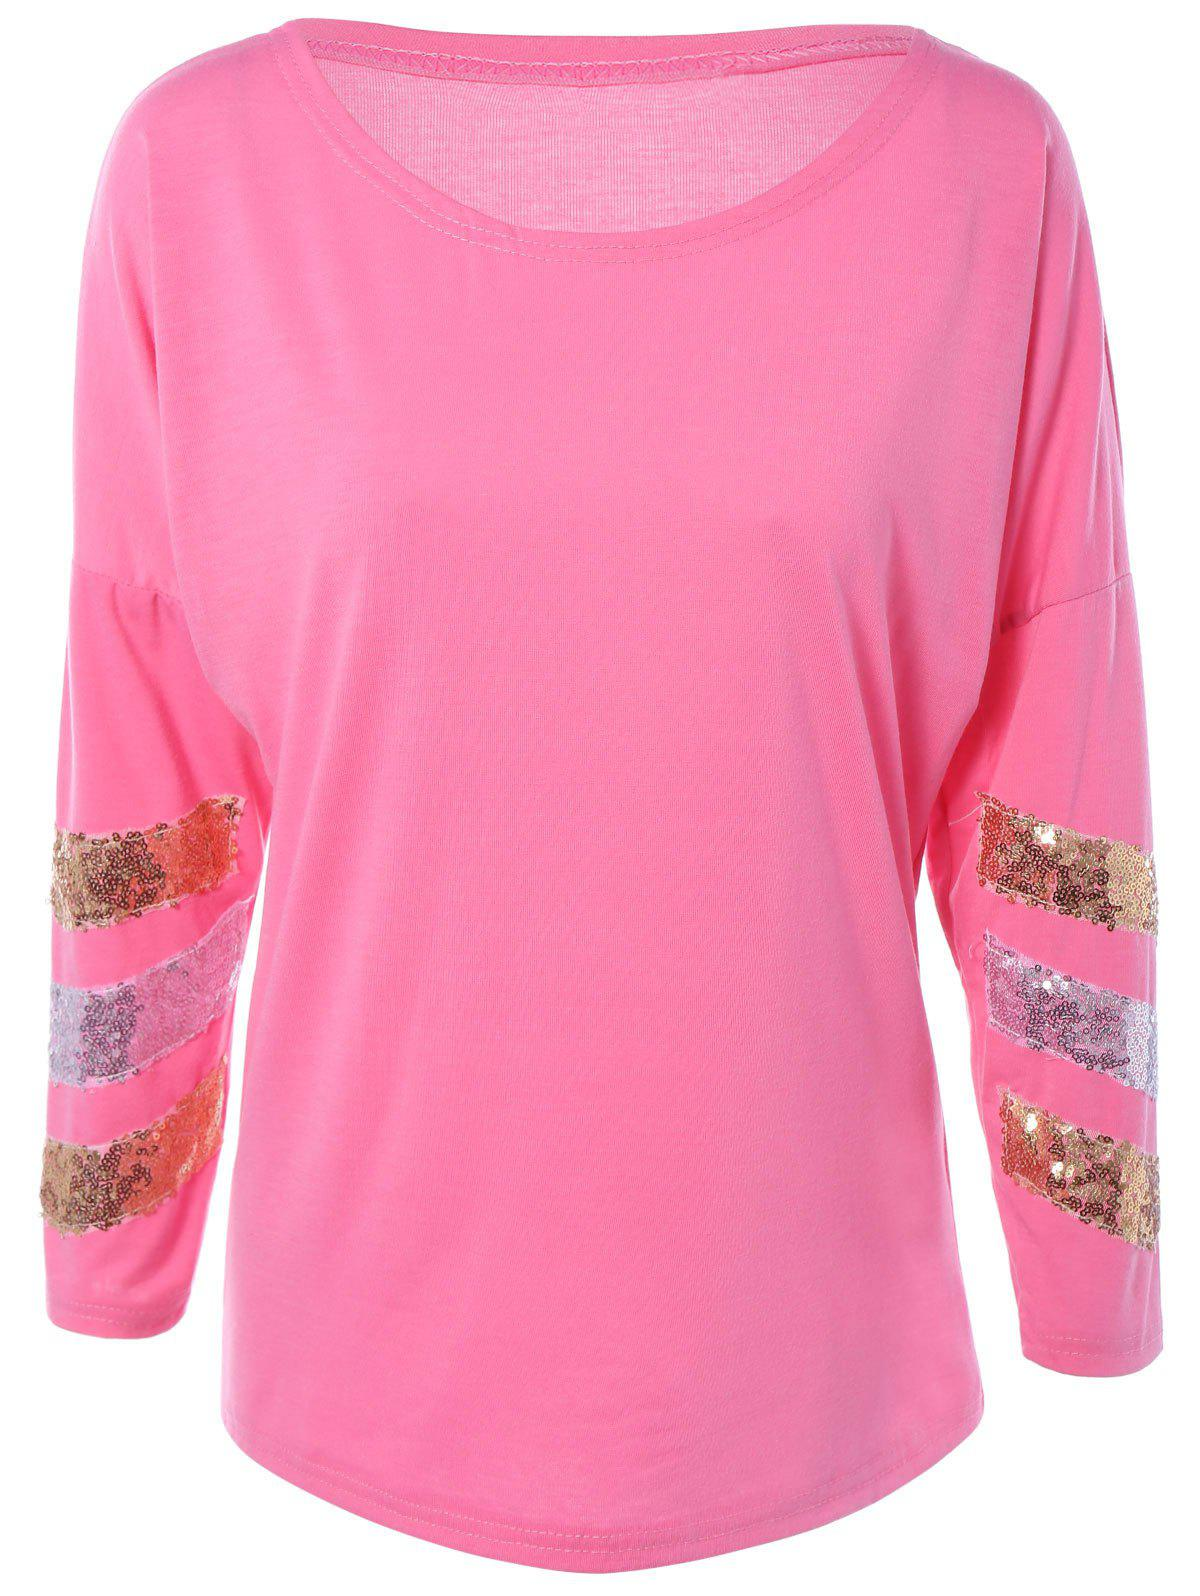 Sequined Stripe Long Sleeve Loose-Fitting T-Shirt - PINK 2XL